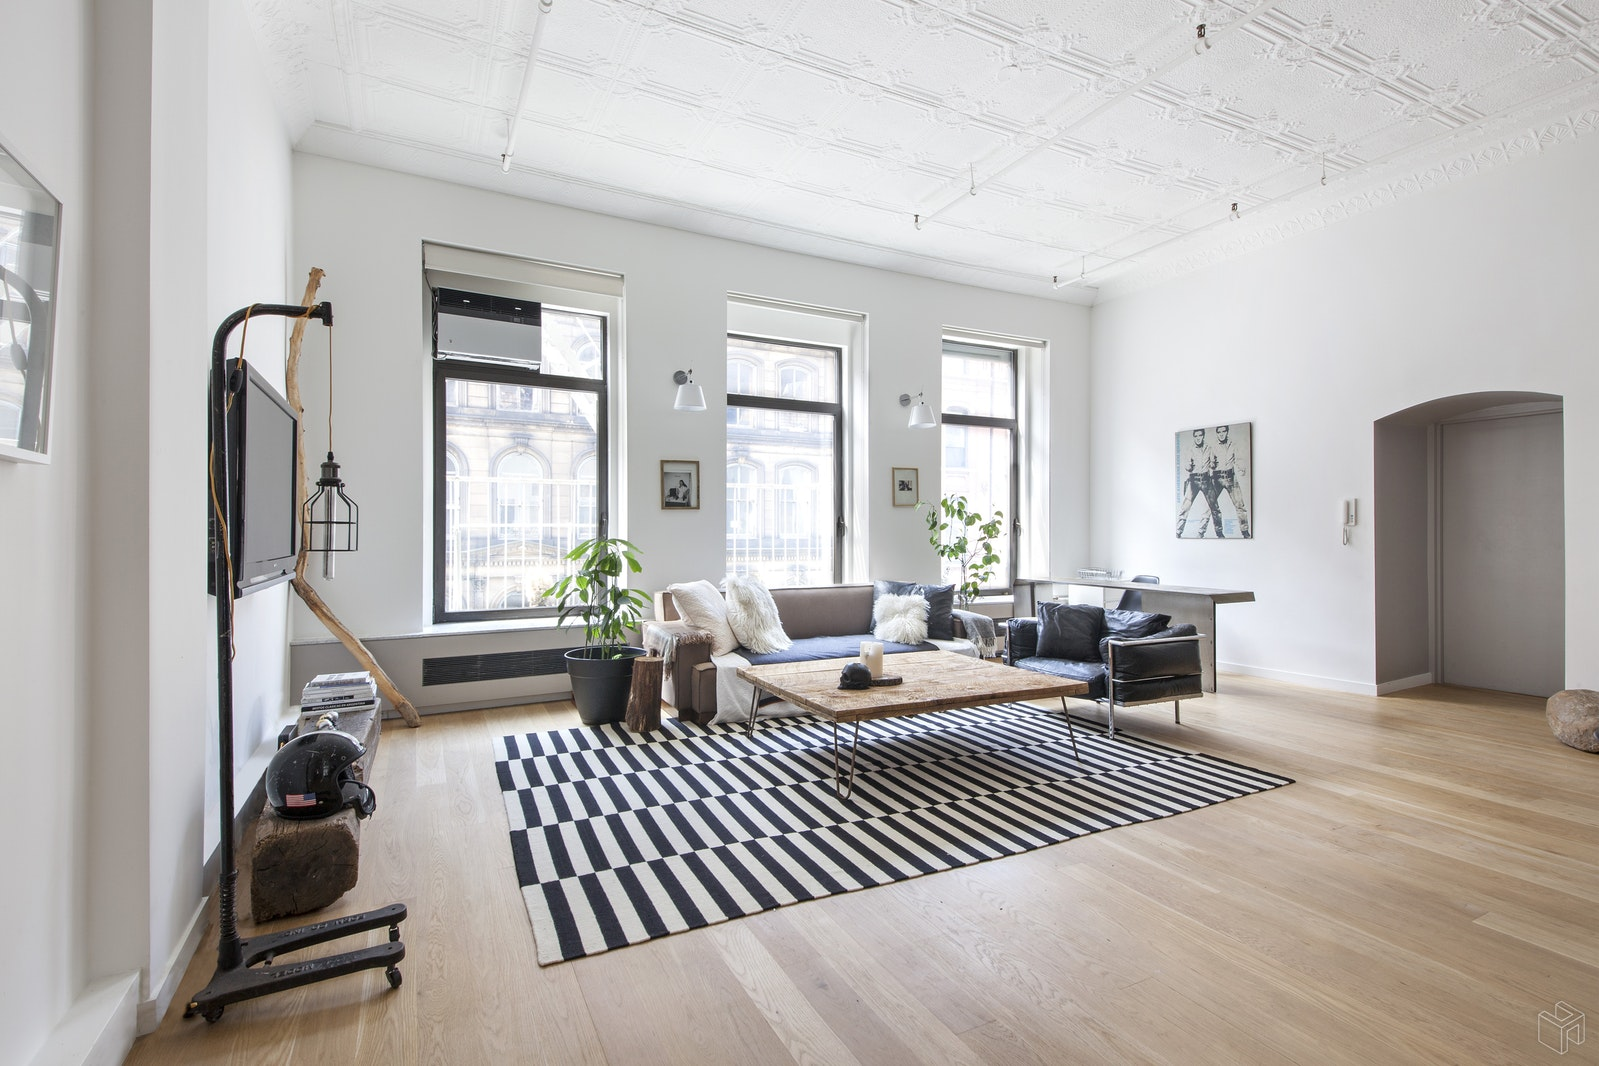 104 Reade Street, Tribeca, NYC, 10013, Price Not Disclosed, Rented Property, Halstead Real Estate, Photo 1